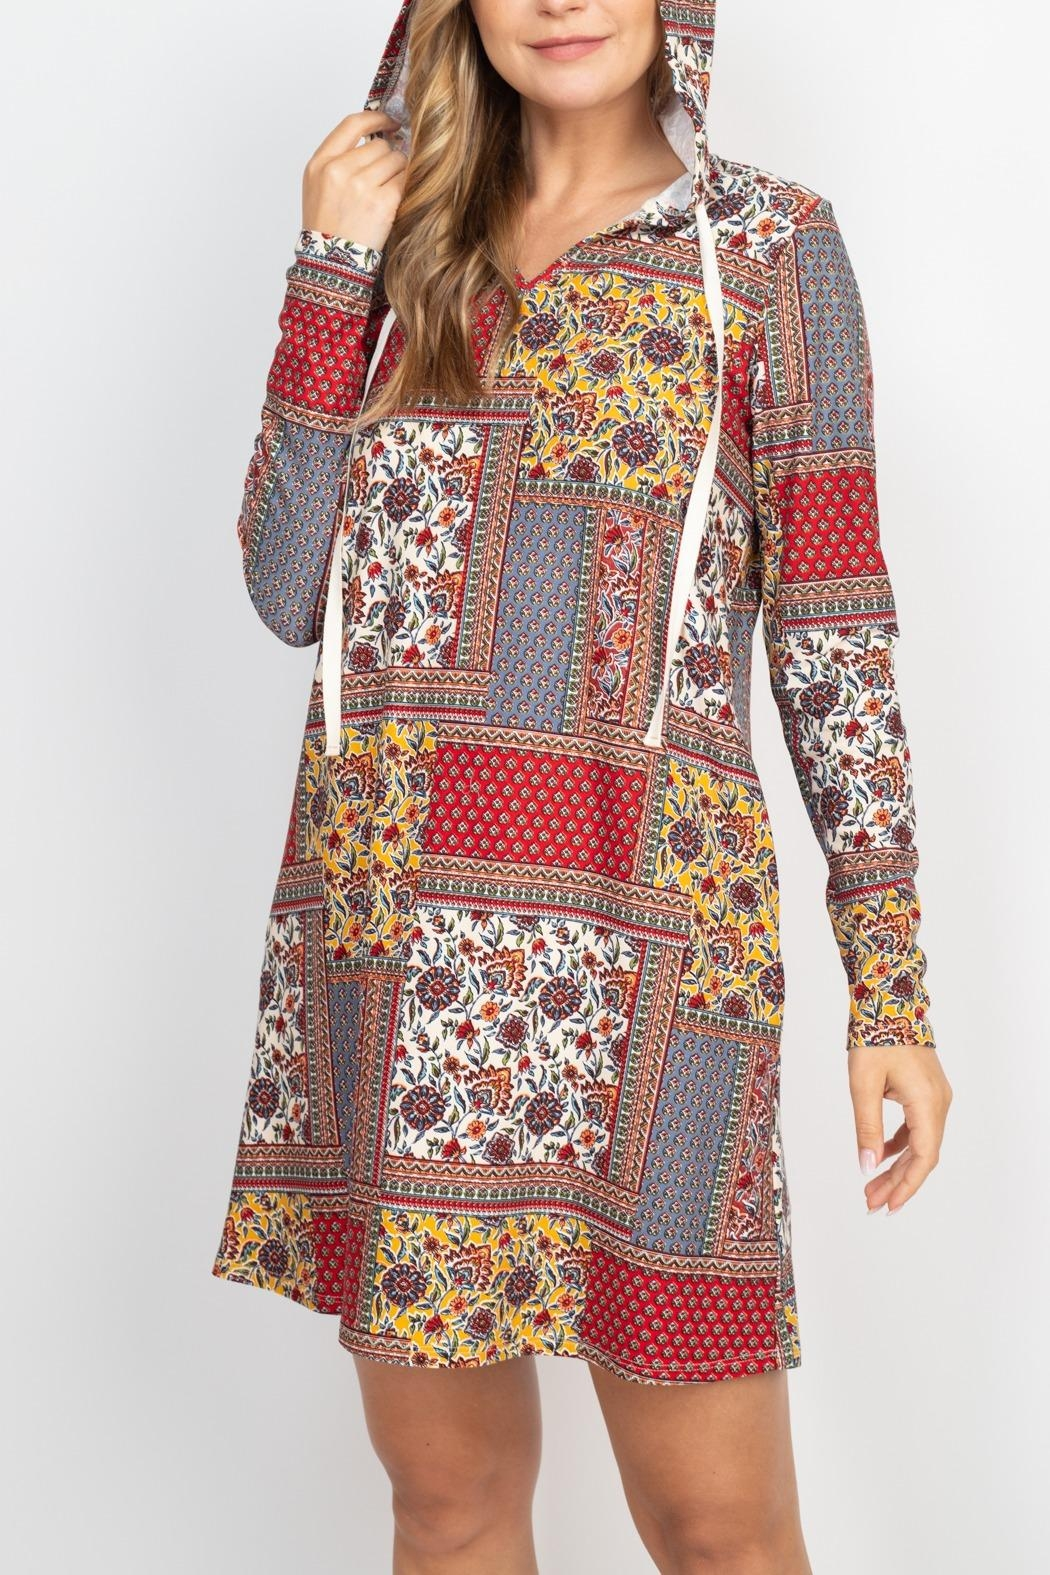 Riah Fashion Long-Sleeve-Ethnic-Floral-Self-Tie-Hoodie-Dress - Front Full Image